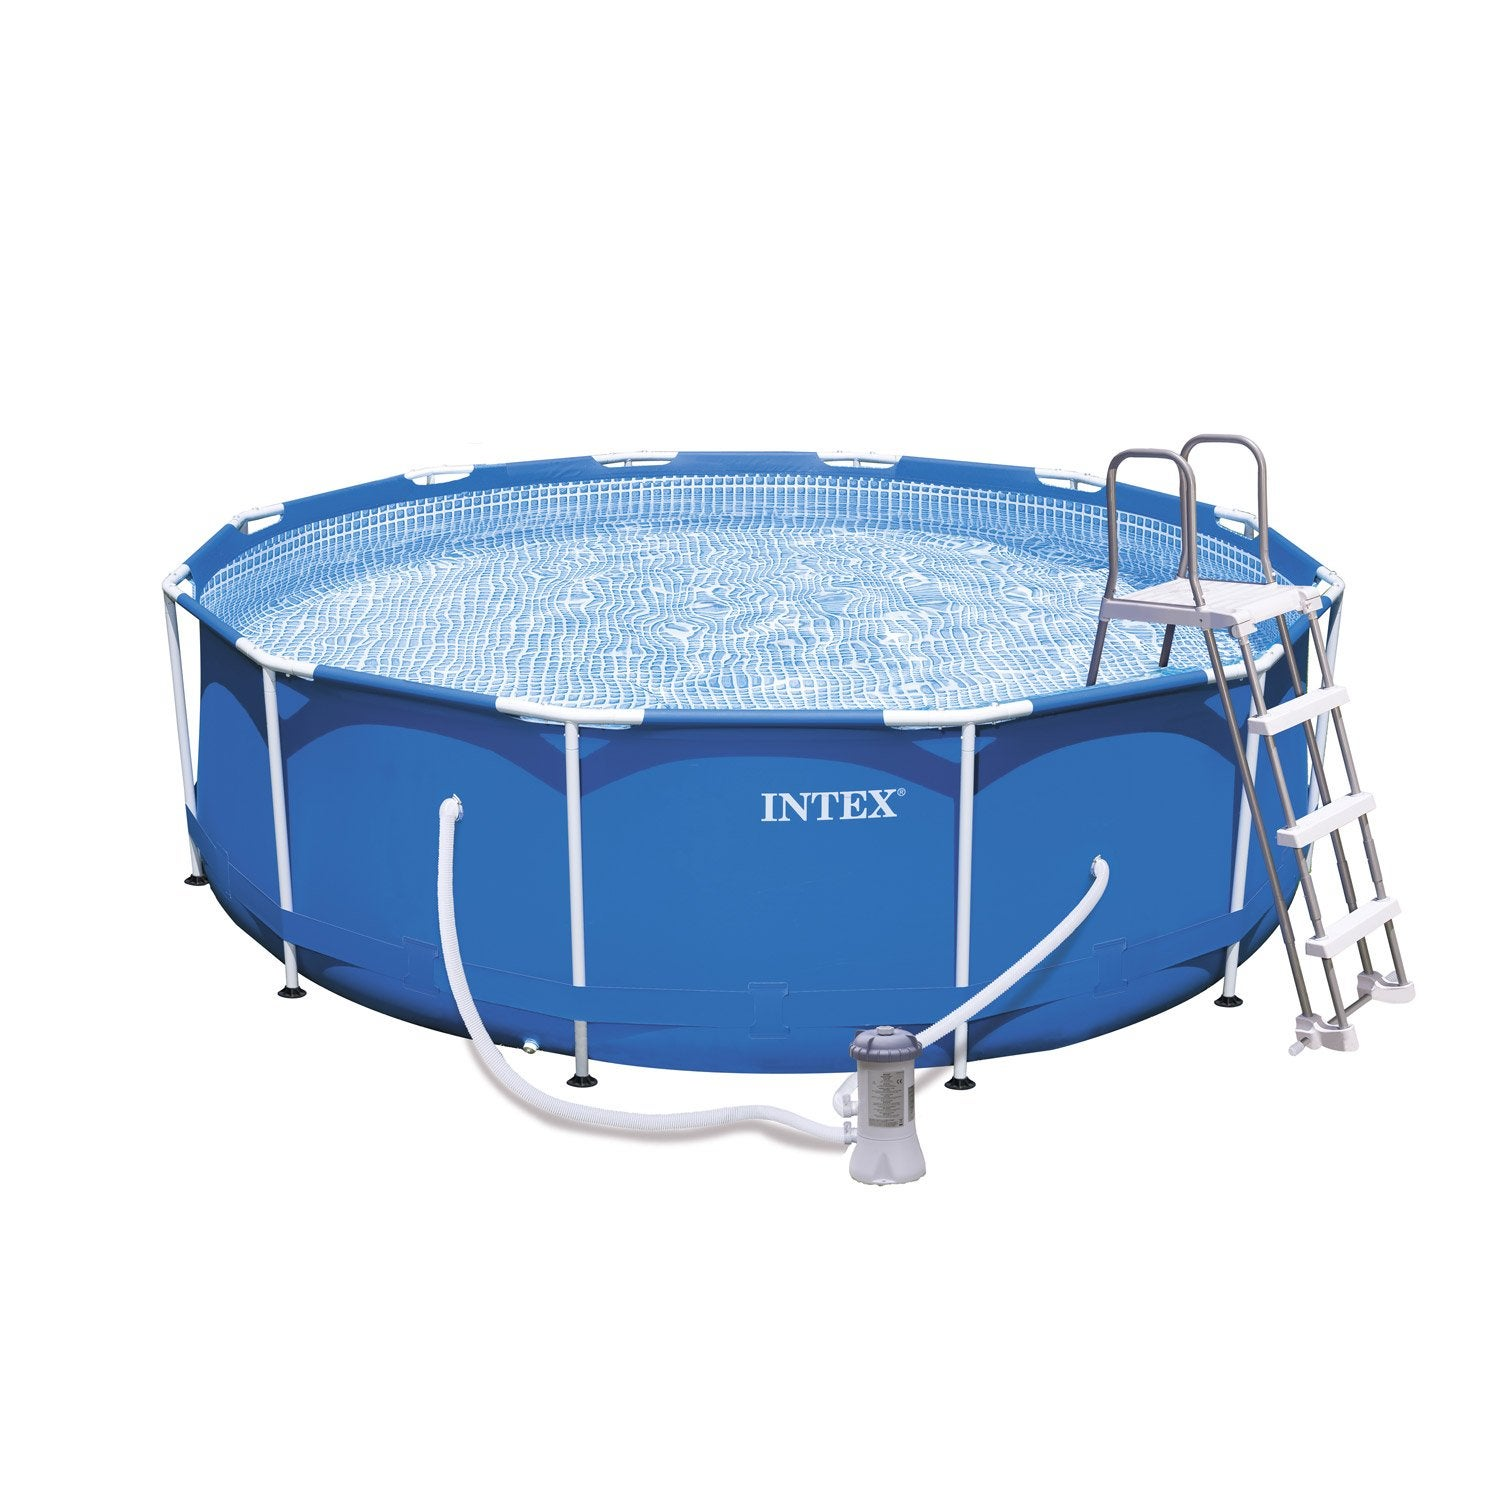 Piscine hors sol autoportante tubulaire m tal frame intex for Piscine intex